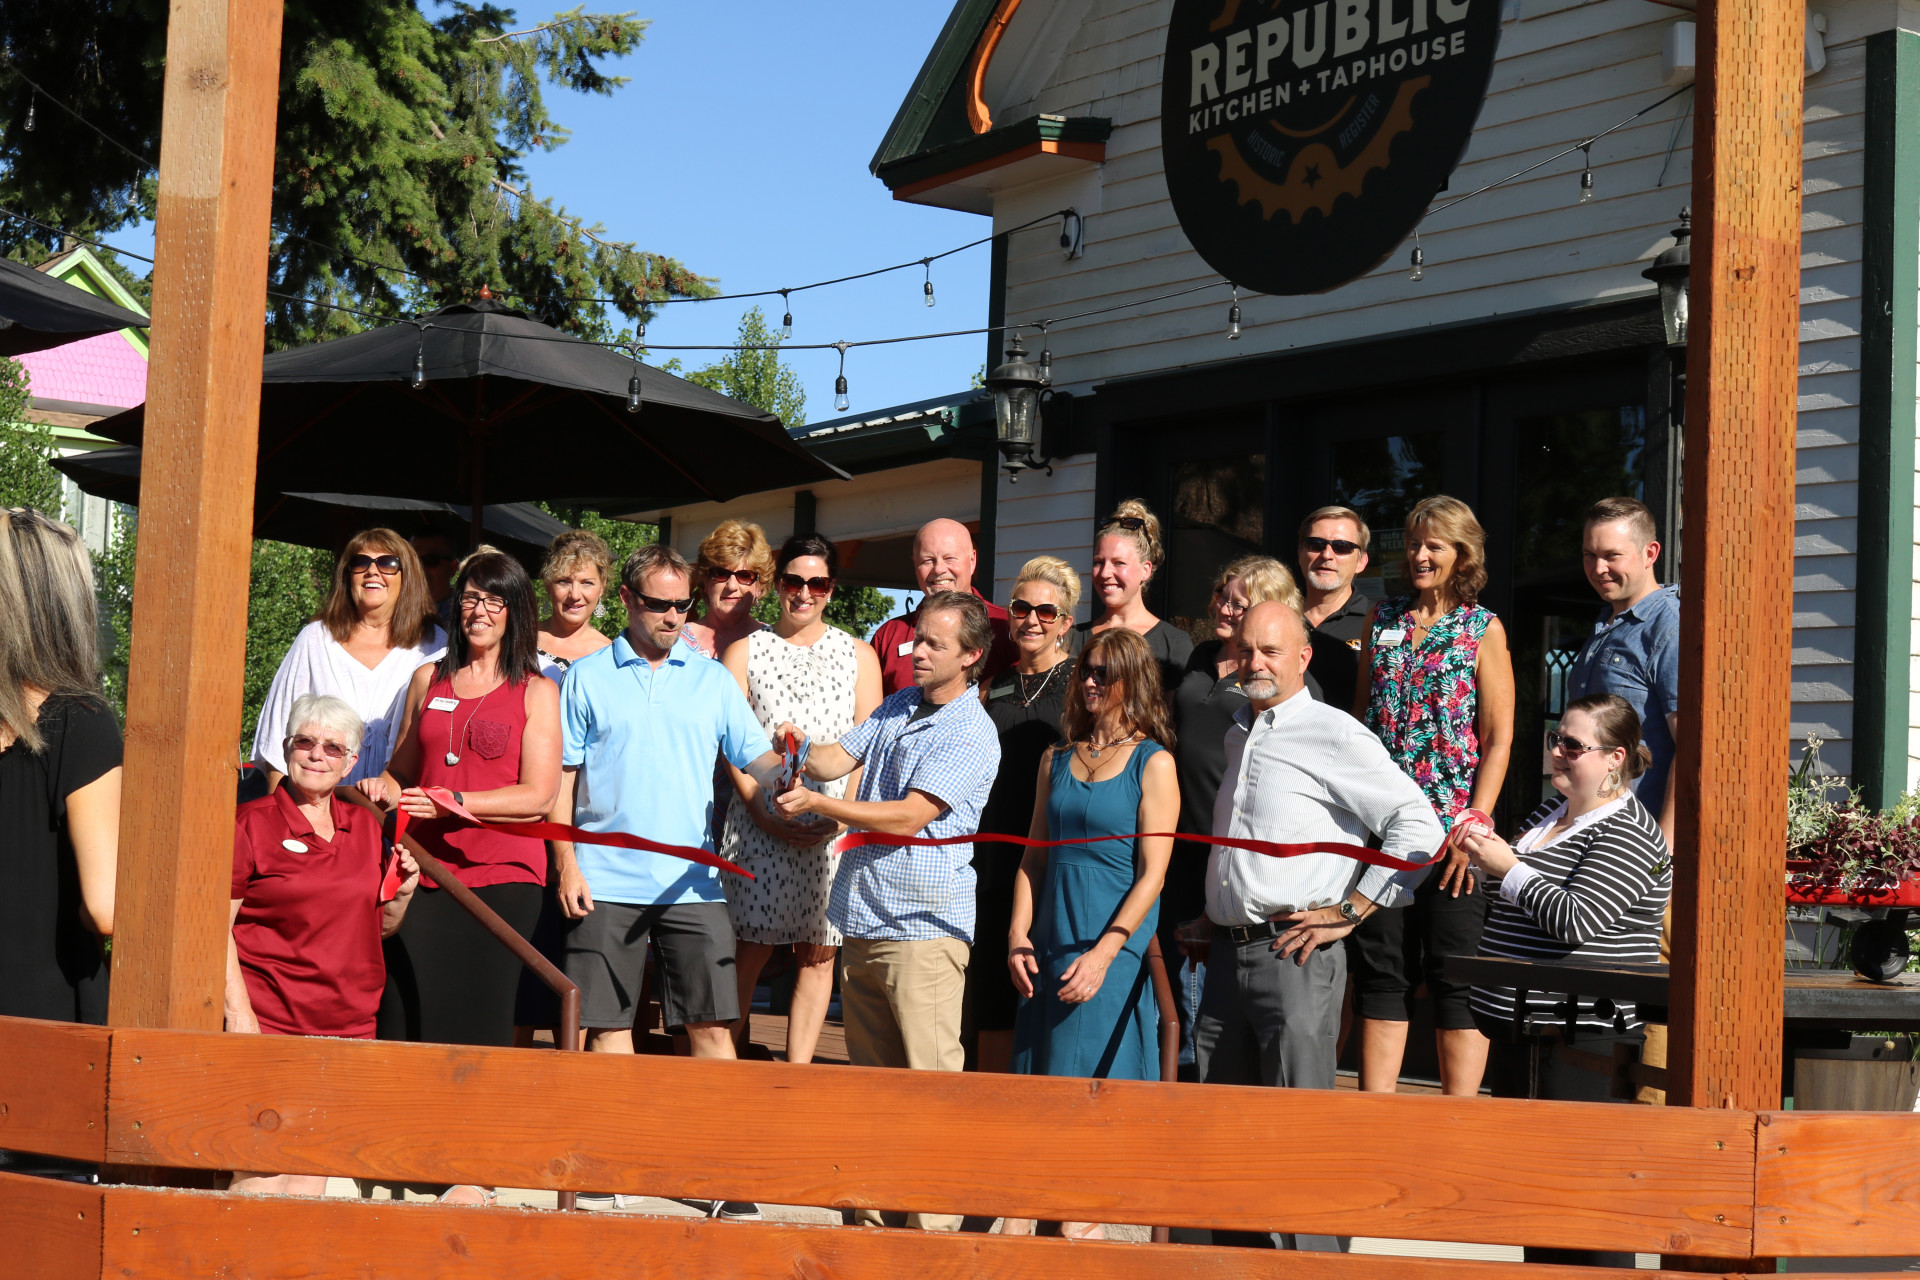 Republic-Kitchen-and-Taphouse-Ribbon-Cutting-2017-B-w1920.jpg